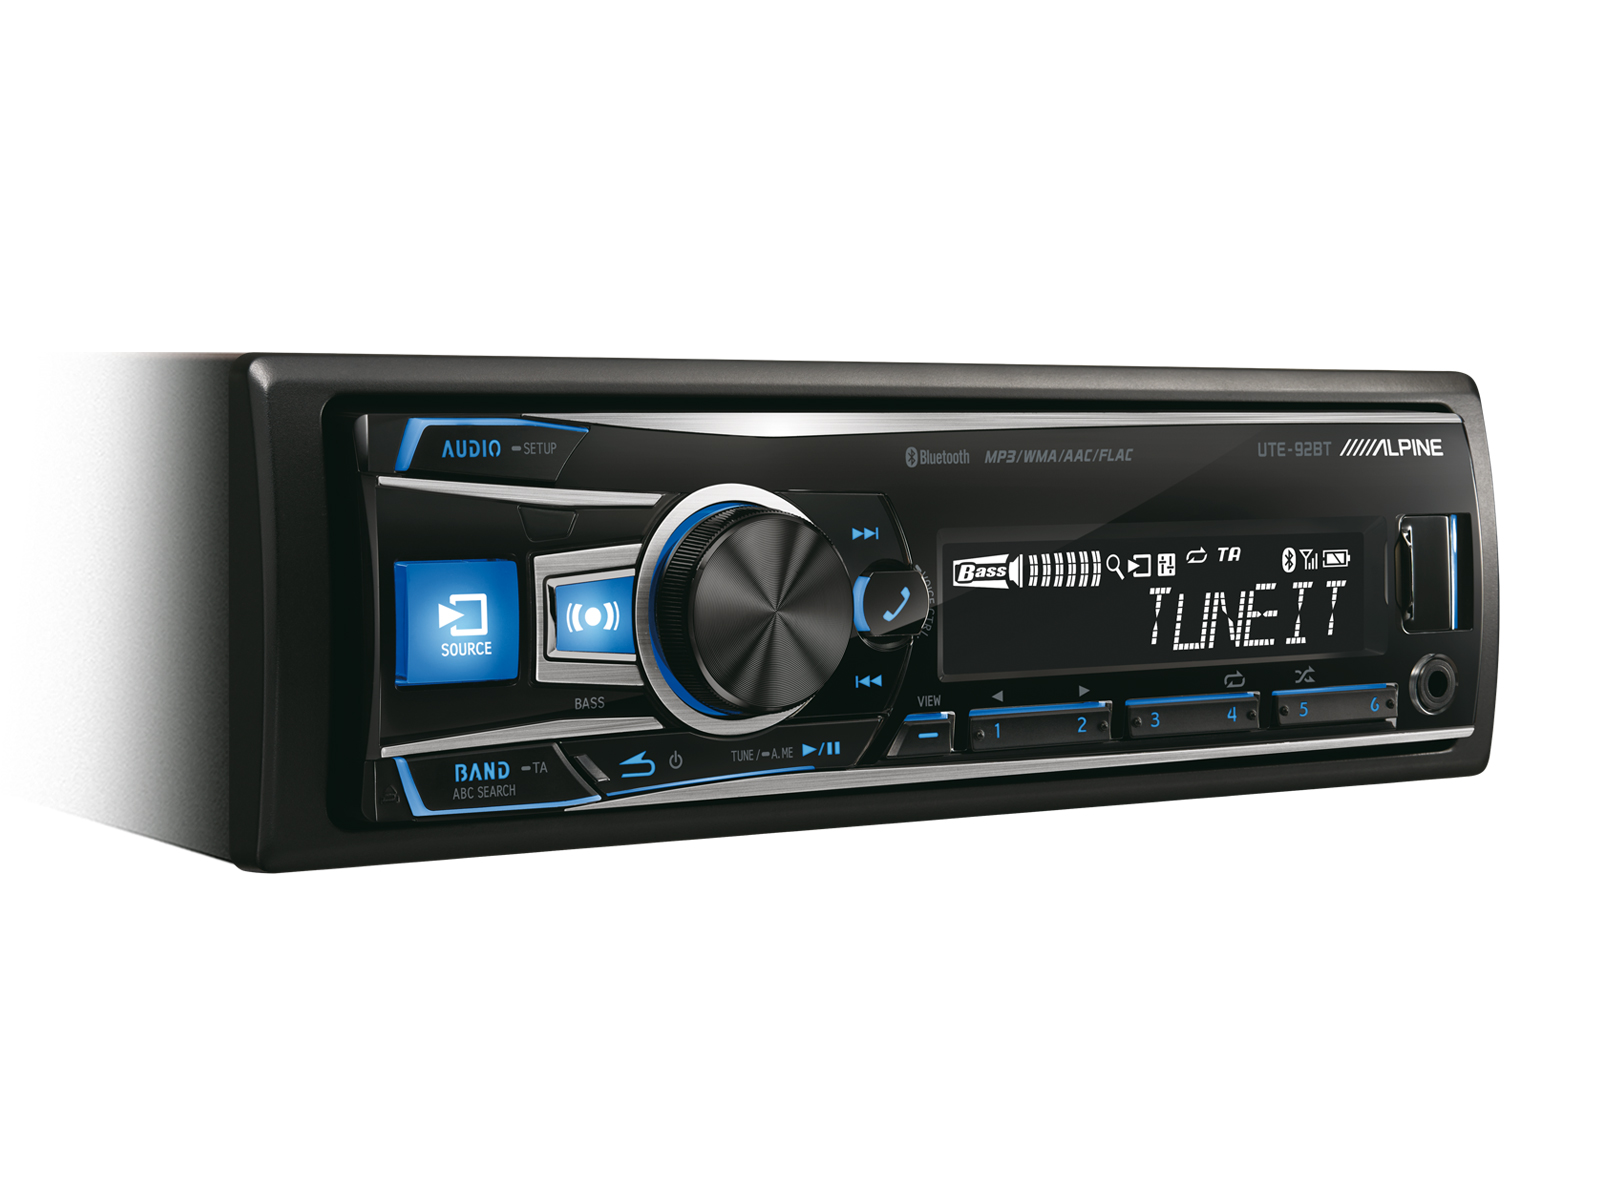 DIGITAL MEDIA RECEIVER MIT BLUETOOTH® - Alpine - UTE-92BT